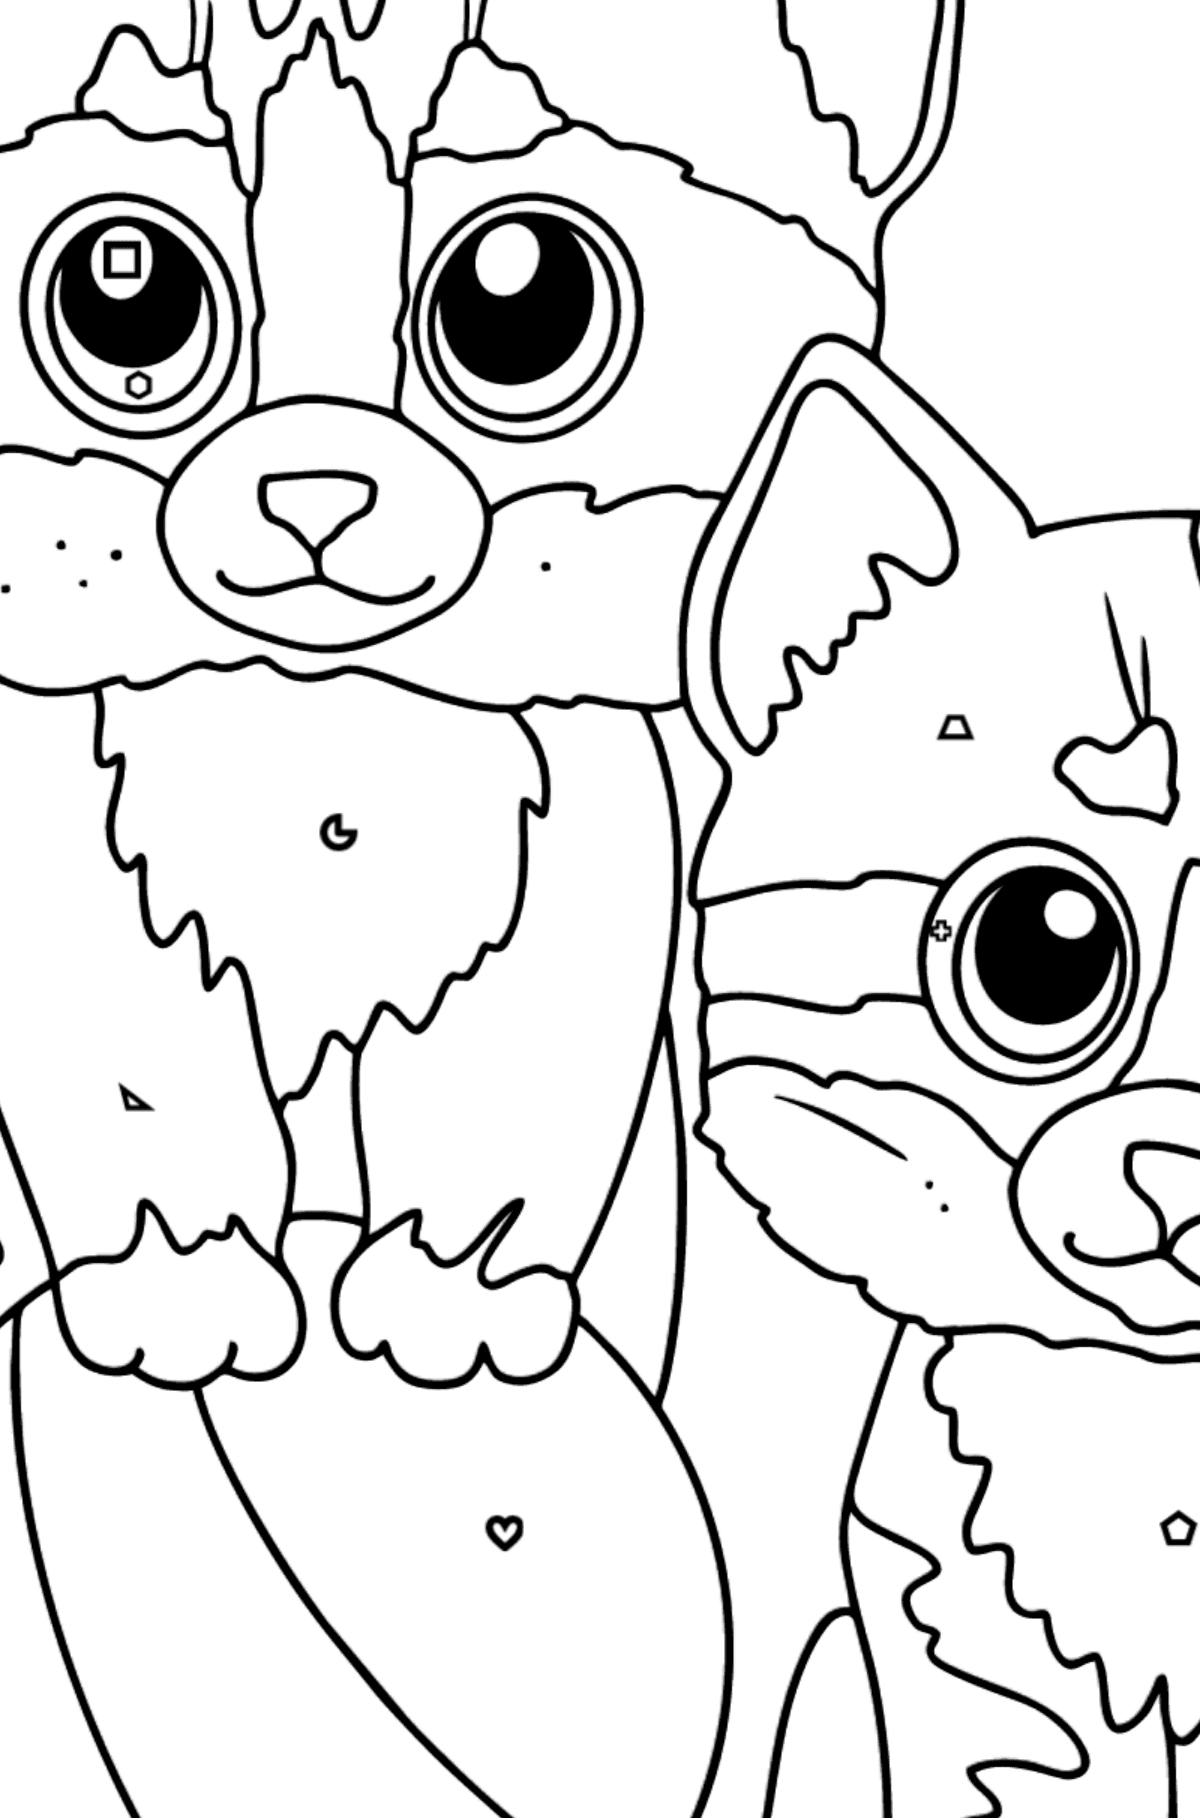 Coloring Page - Two Friendly Kittens Playing with a Ball - Coloring by Geometric Shapes for Kids